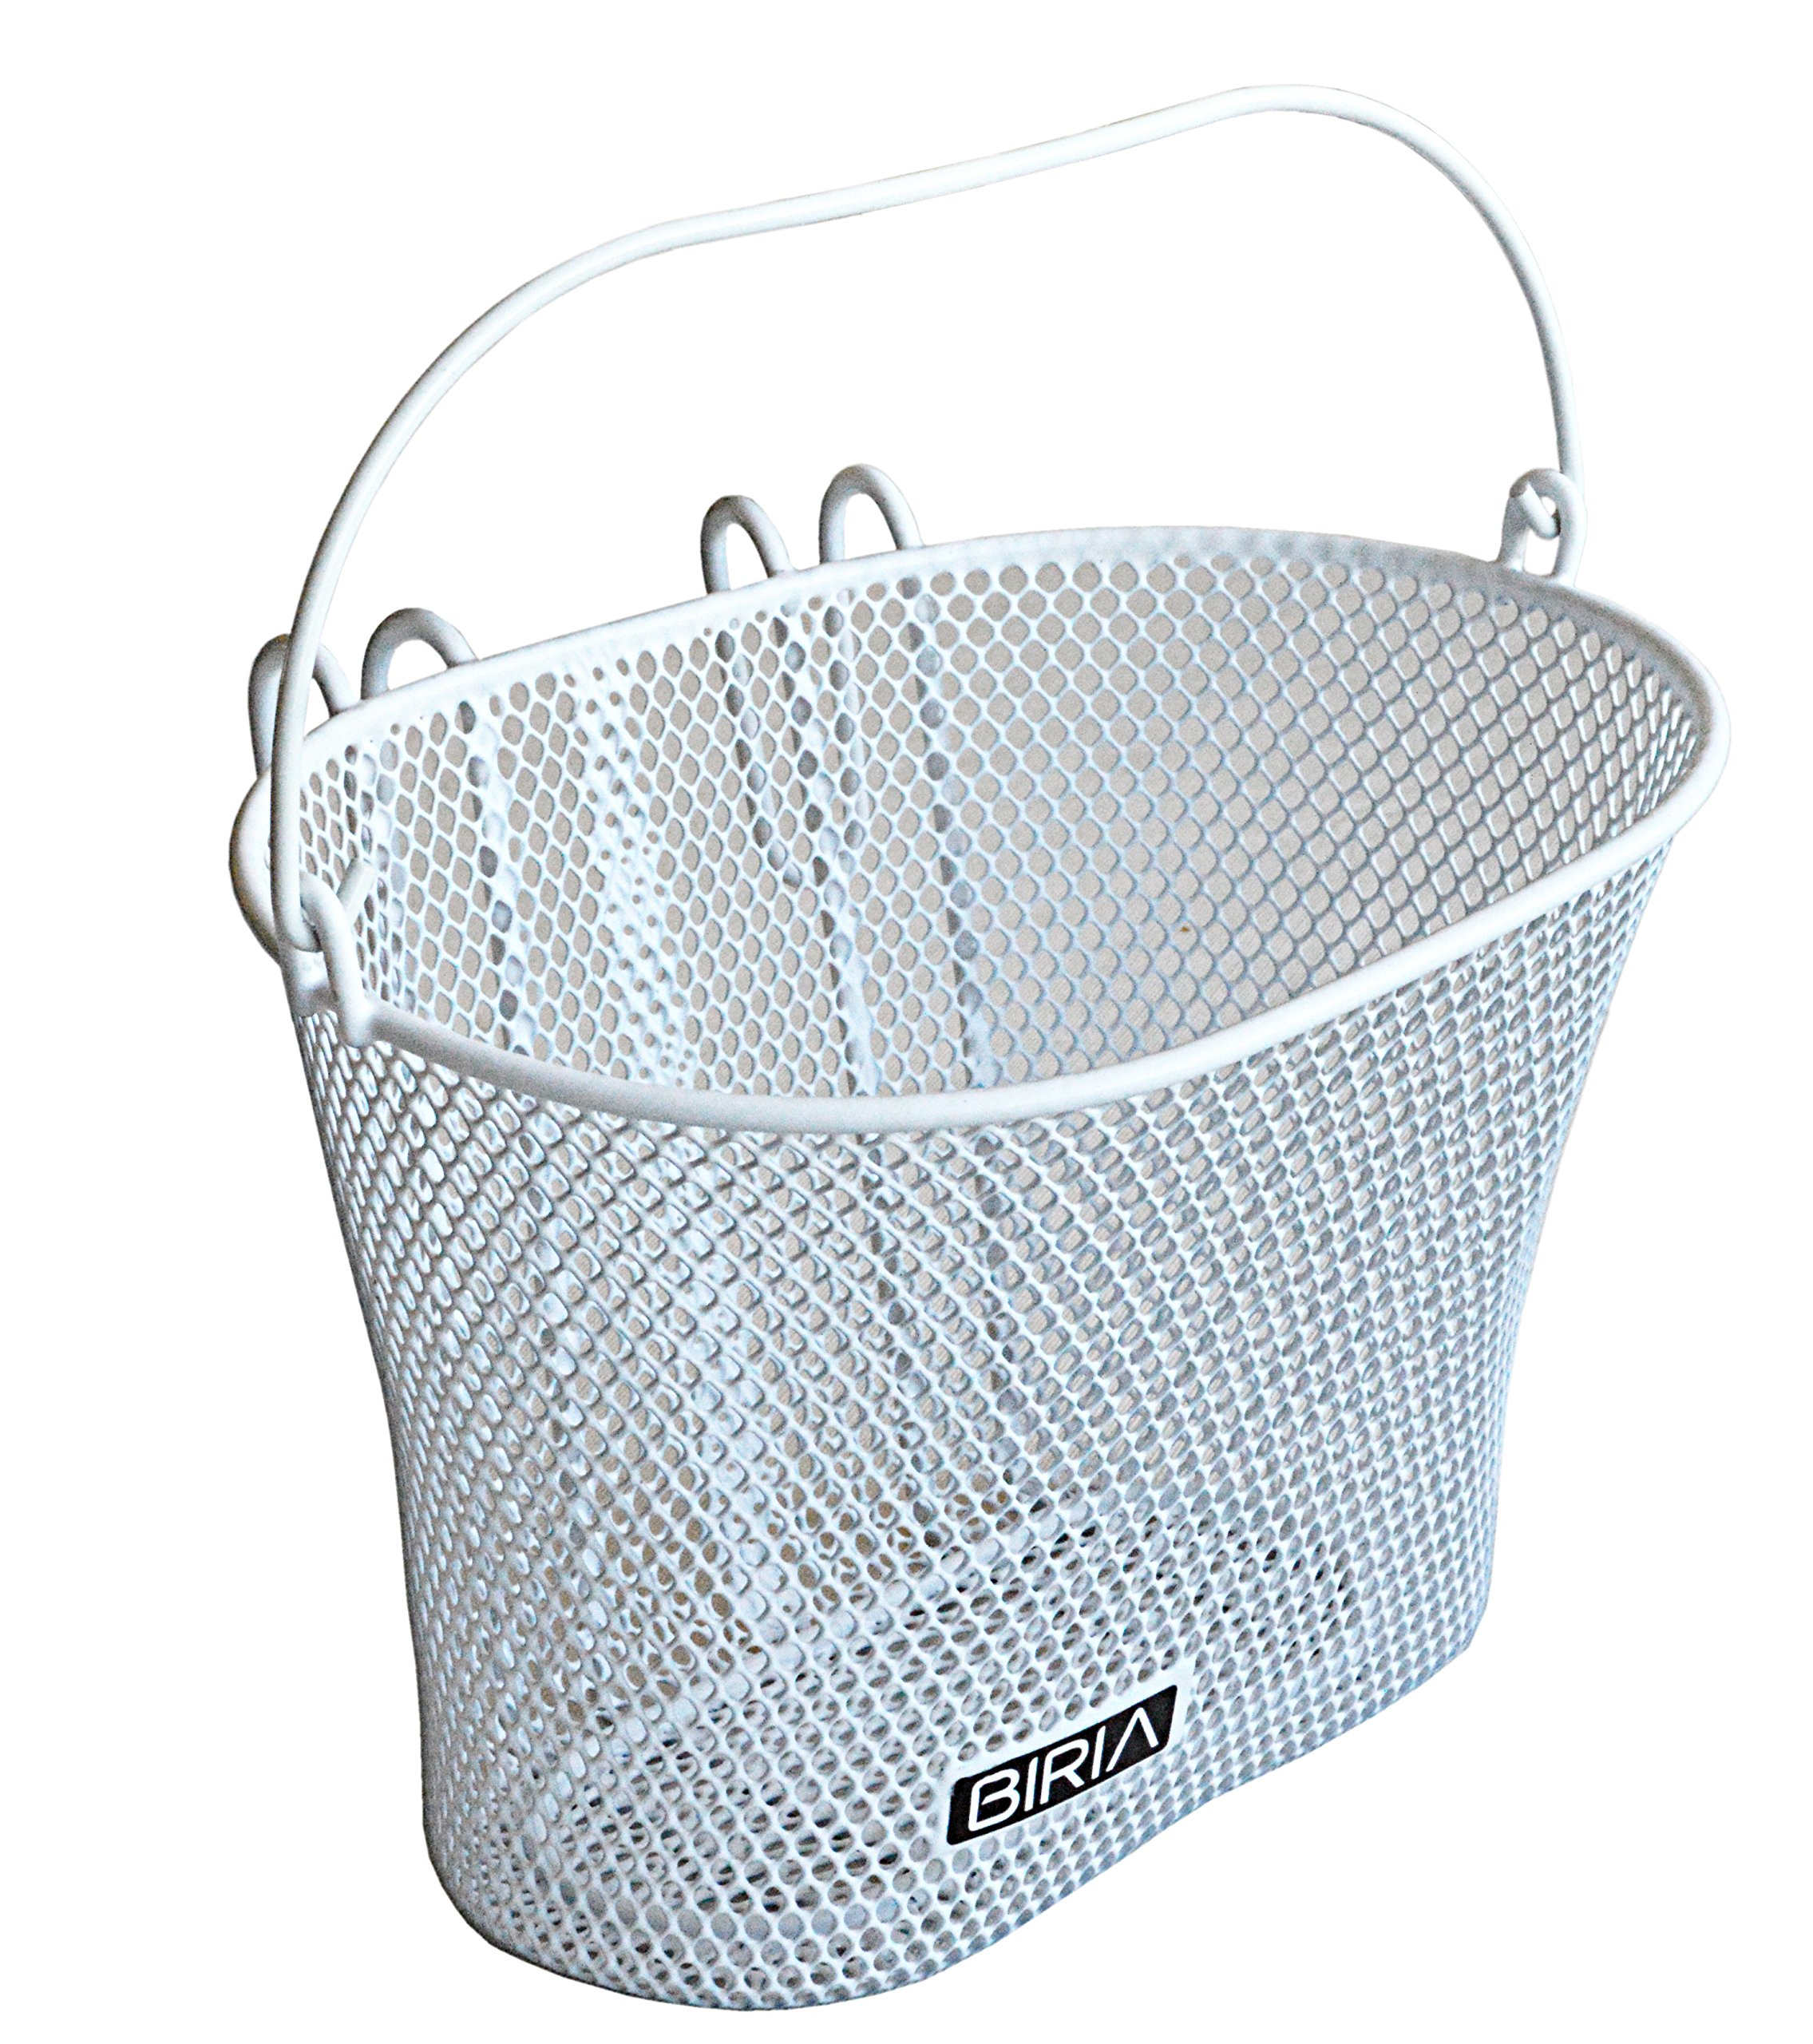 Biria Basket with Hooks White, Front, Removable, Wire mesh Small, Kids Bicycle Basket, White